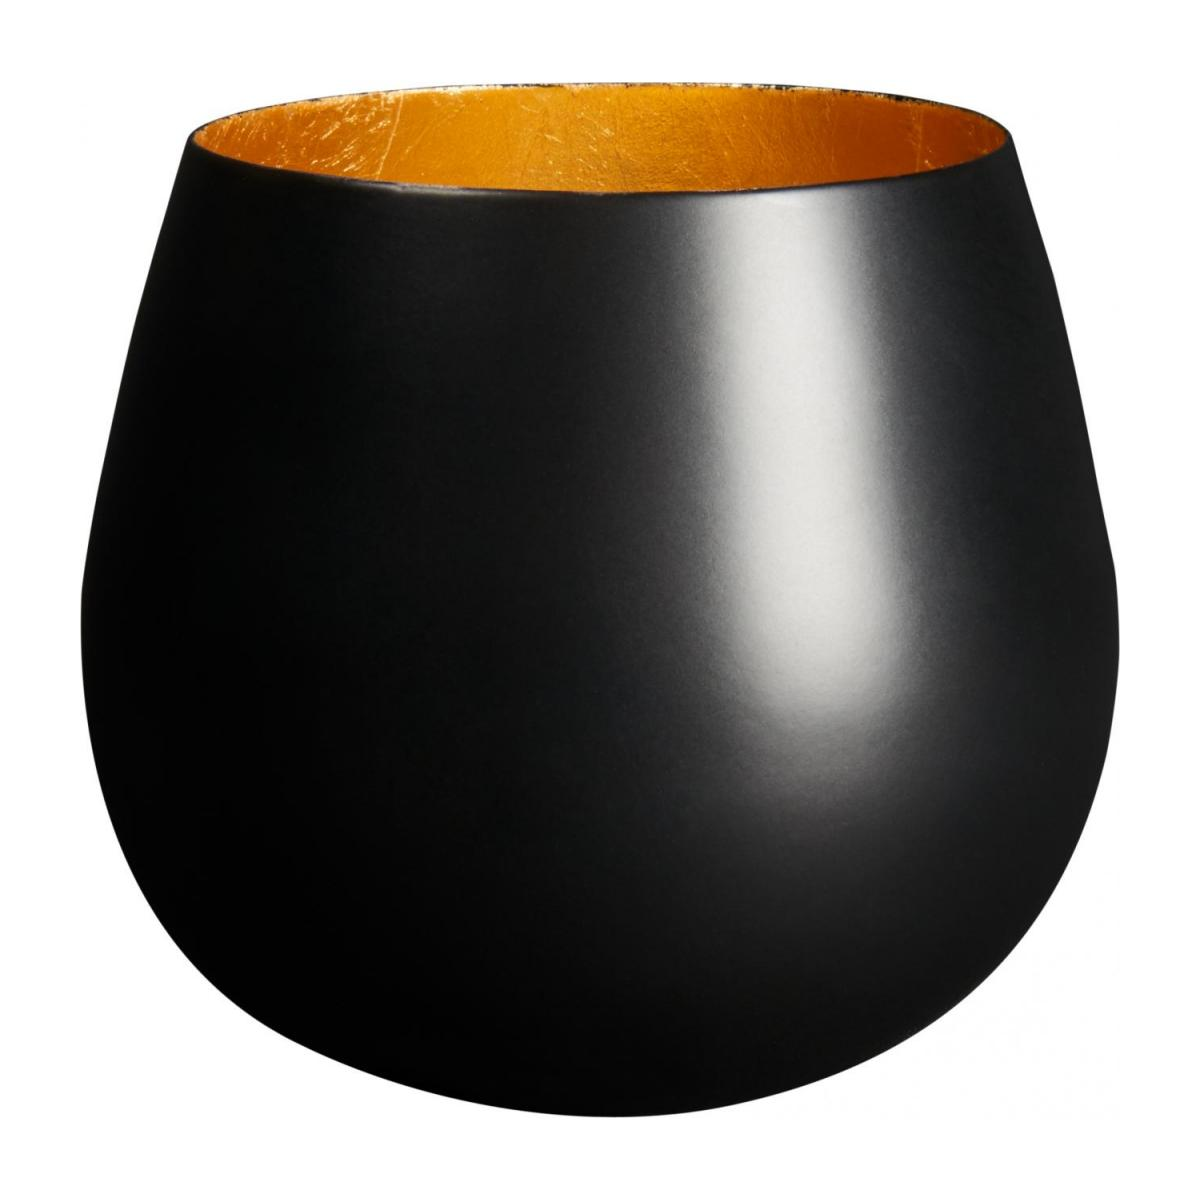 Candle holder made of metal, black and golden n°1